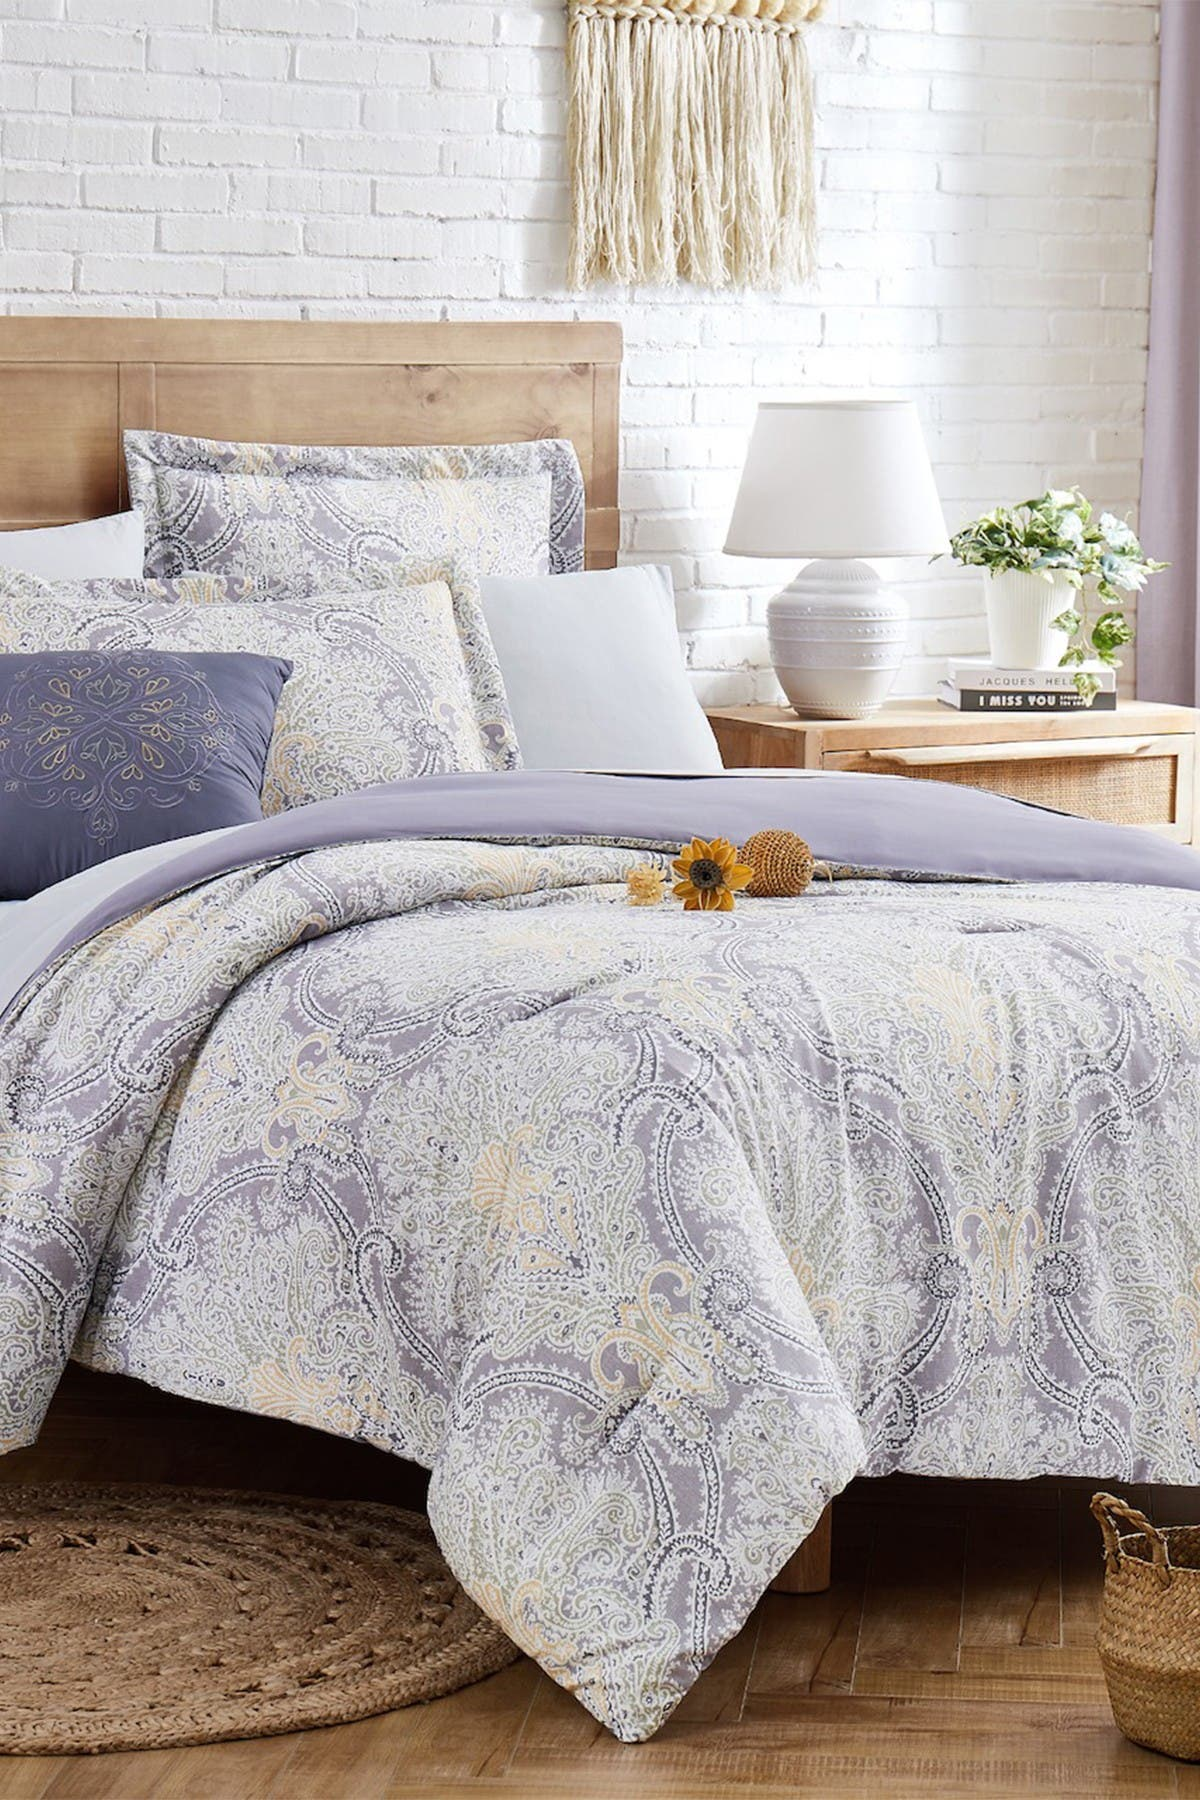 Image of Modern Threads Complete 8-Piece Bedding Set - Annabelle - Full